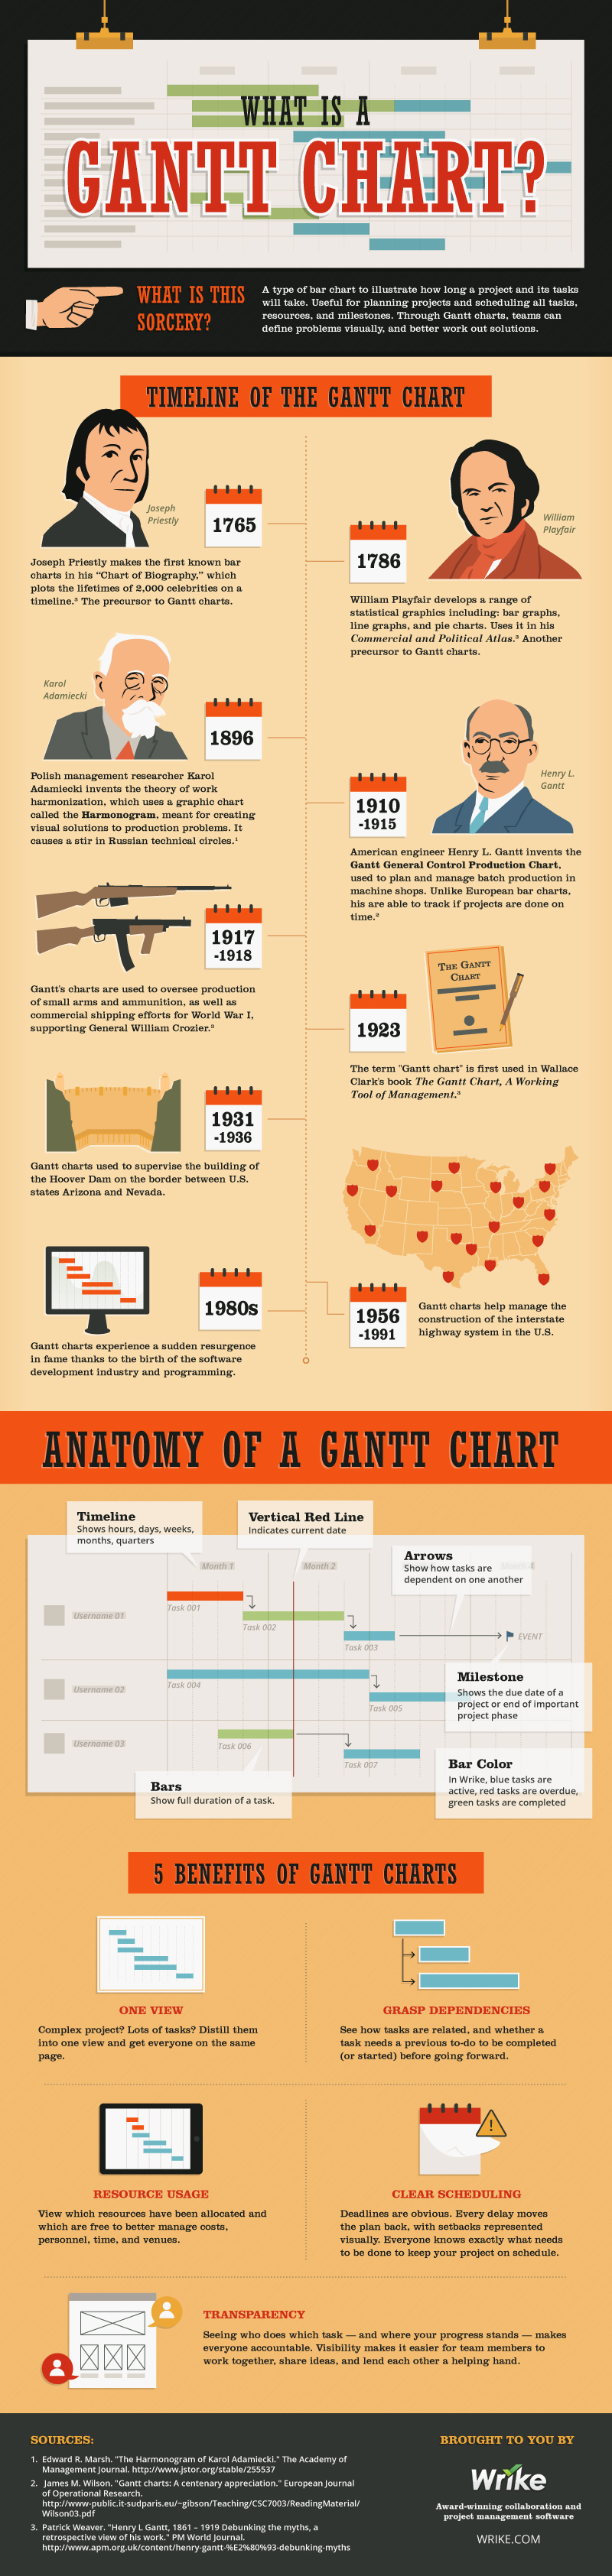 What is a Gantt Chart? Why should you use a Gantt Chart?